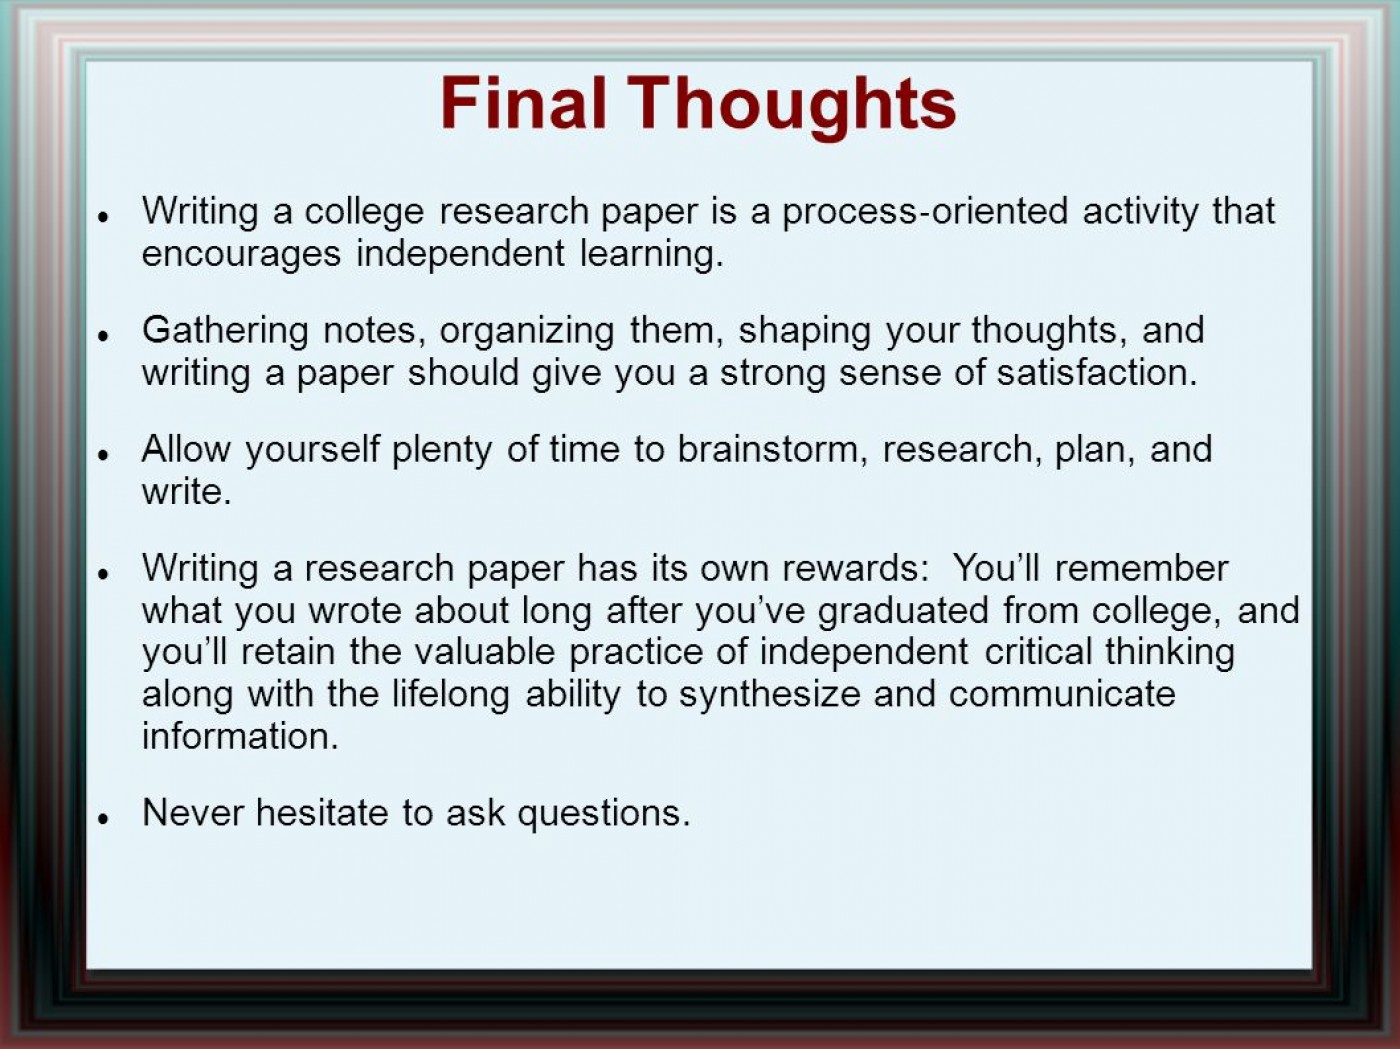 Top dissertation results proofreading services for phd